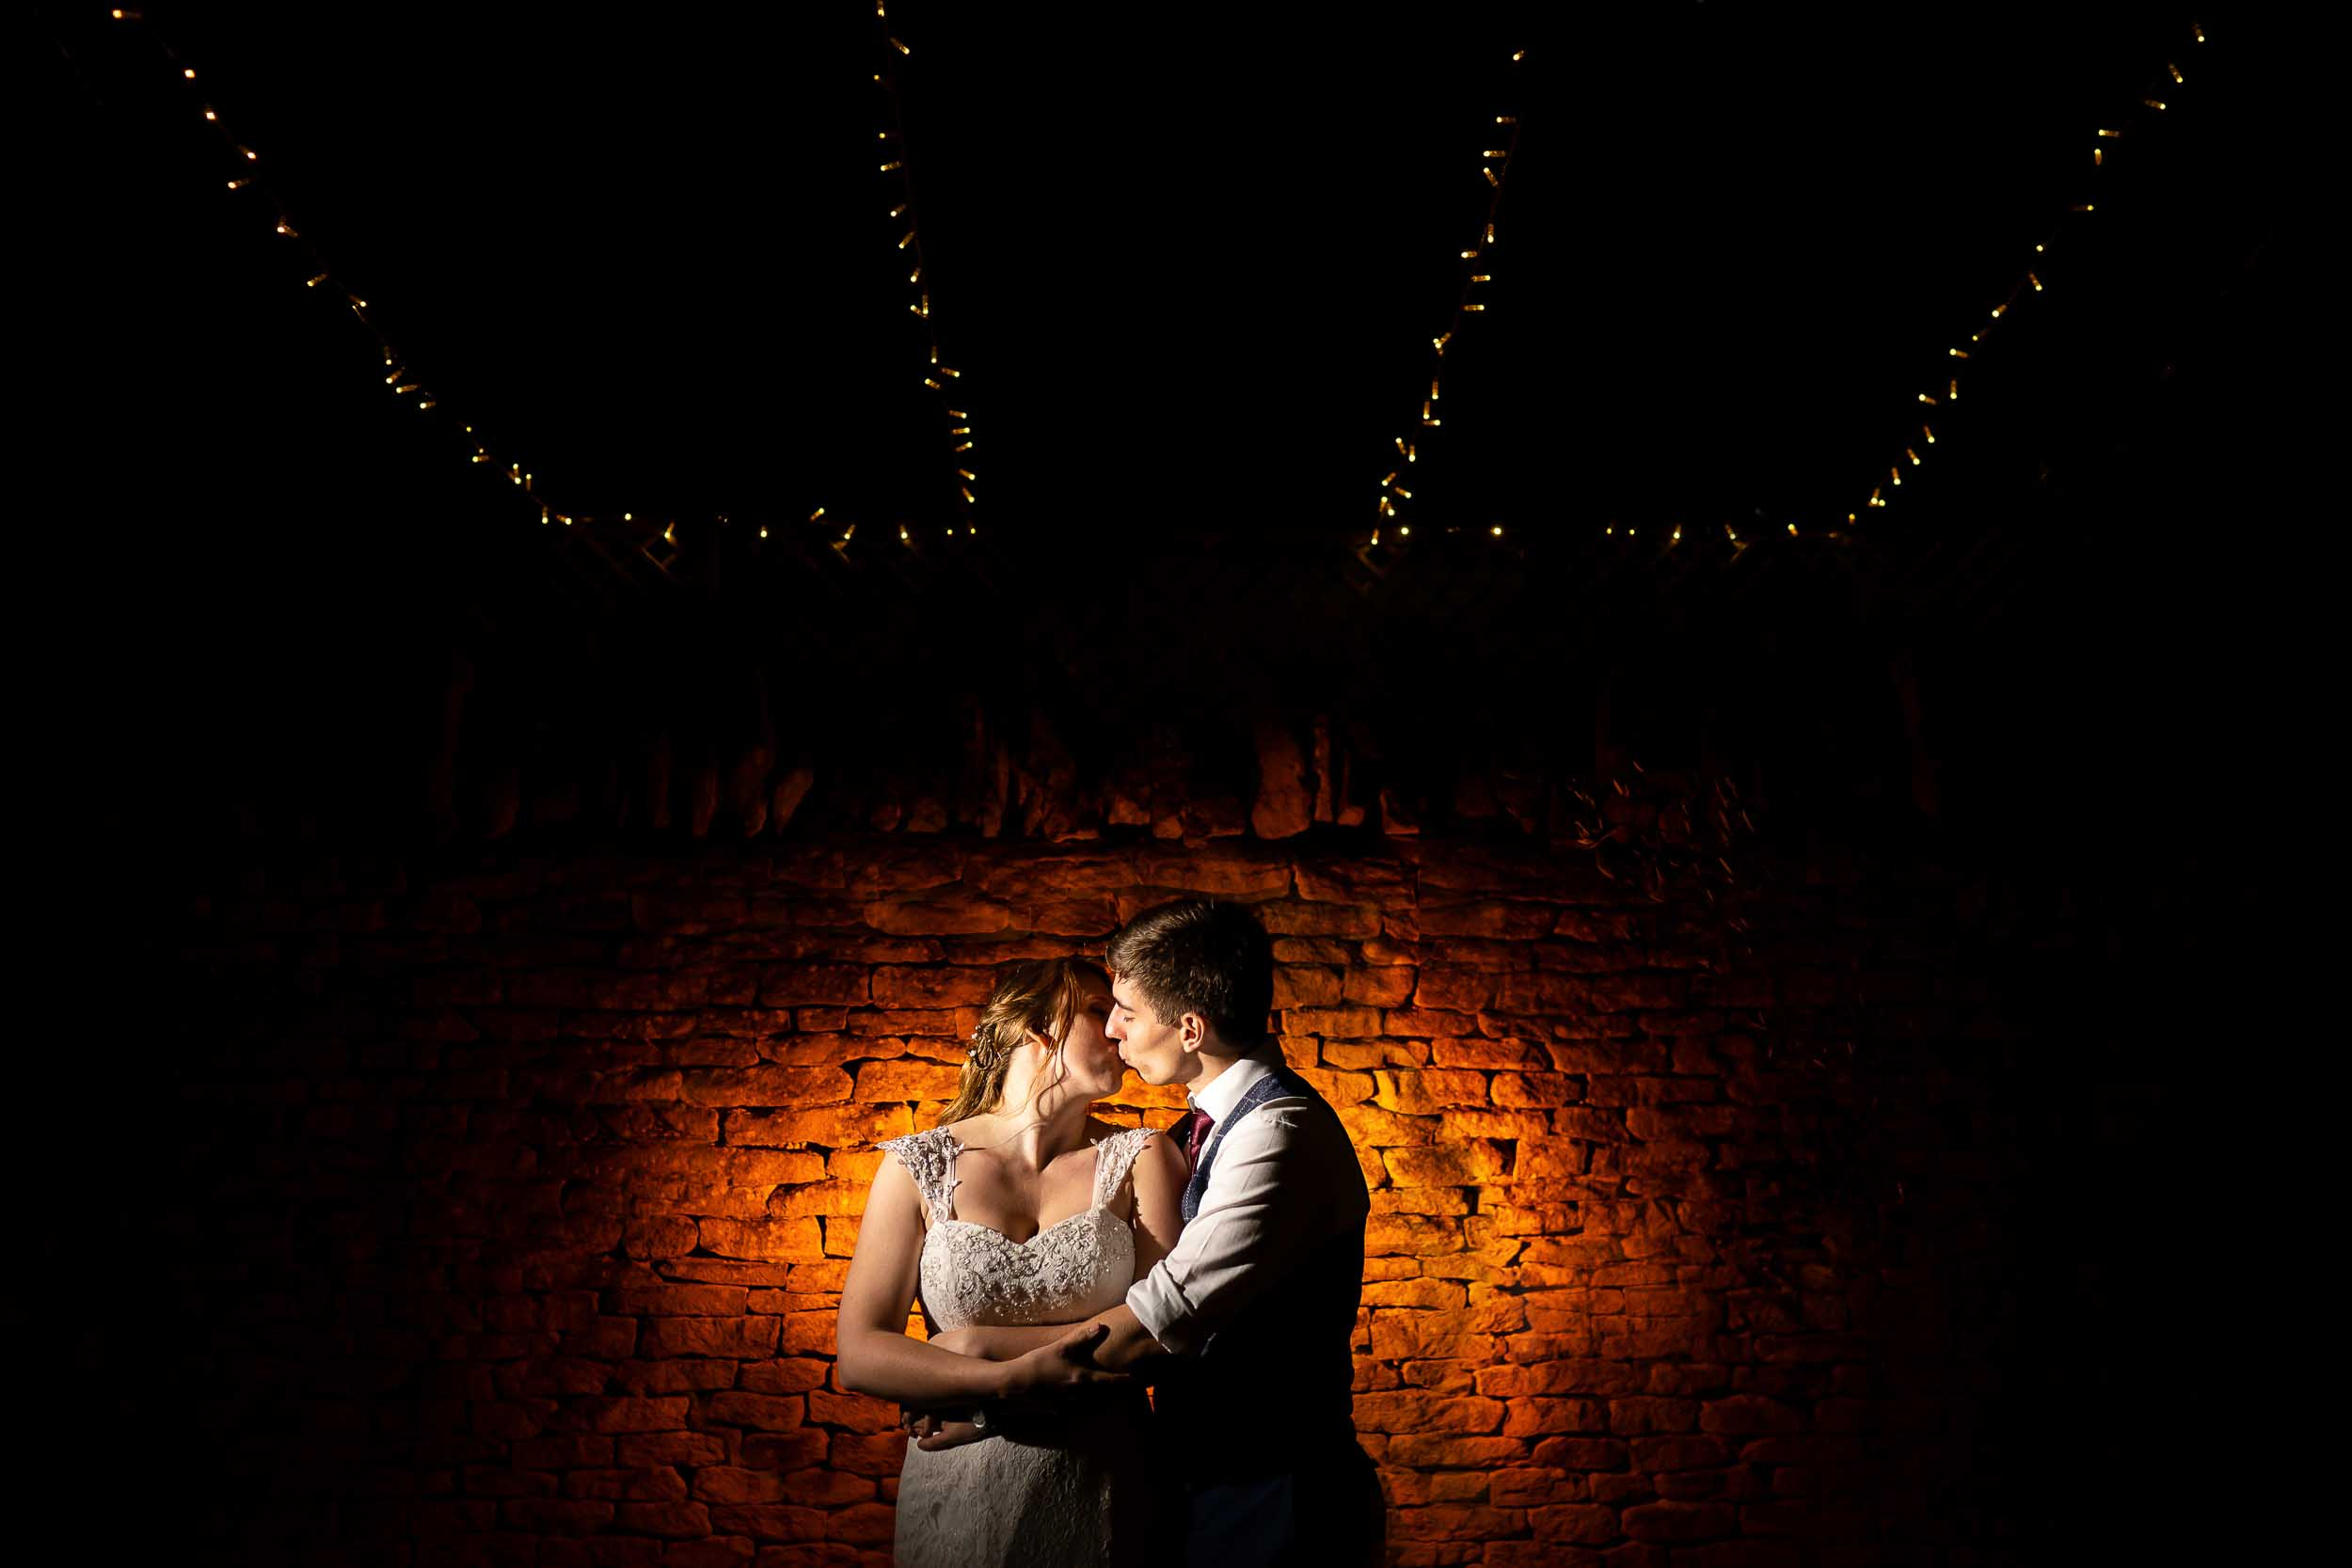 Kingscote, Kingscote barn wedding photographer, Herefordshire wedding photographer, Gloucestershire wedding photographer, Creative, Wedding, Bride, Groom